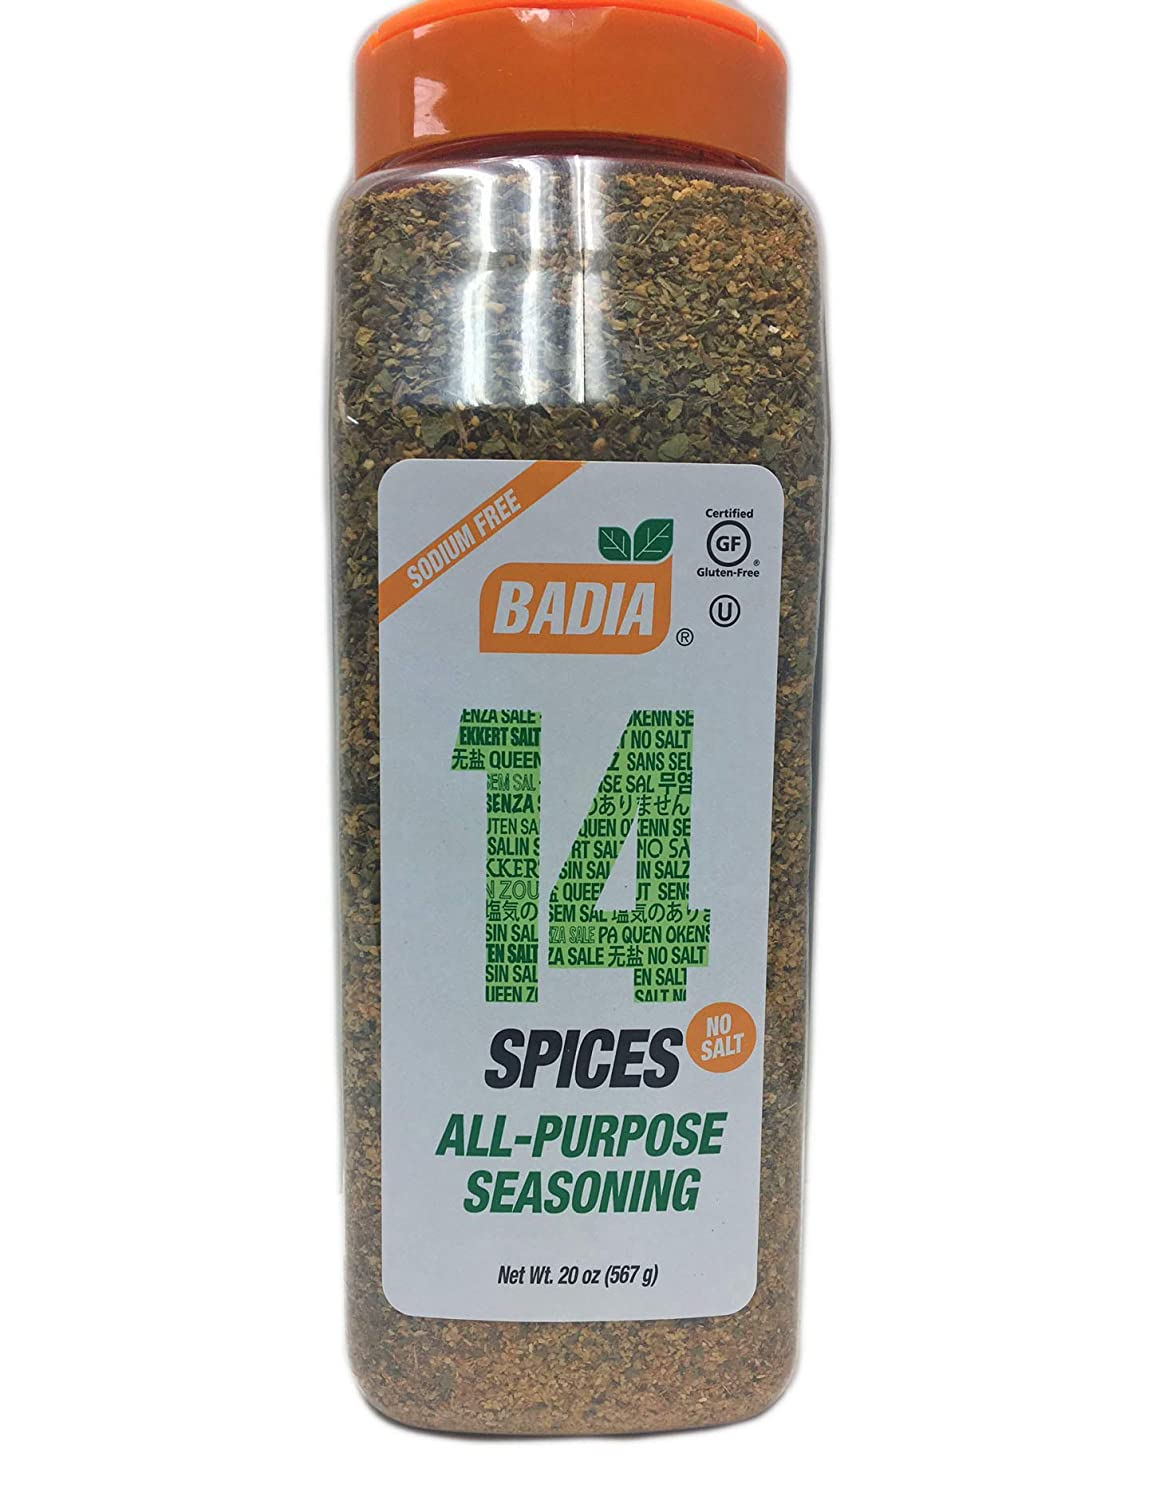 Amazon.com : 2 PACK 14 Spices Seasoning All Purpose No Salt Sodium Free/Sazon Sin sal 2x20 oz : Grocery & Gourmet Food